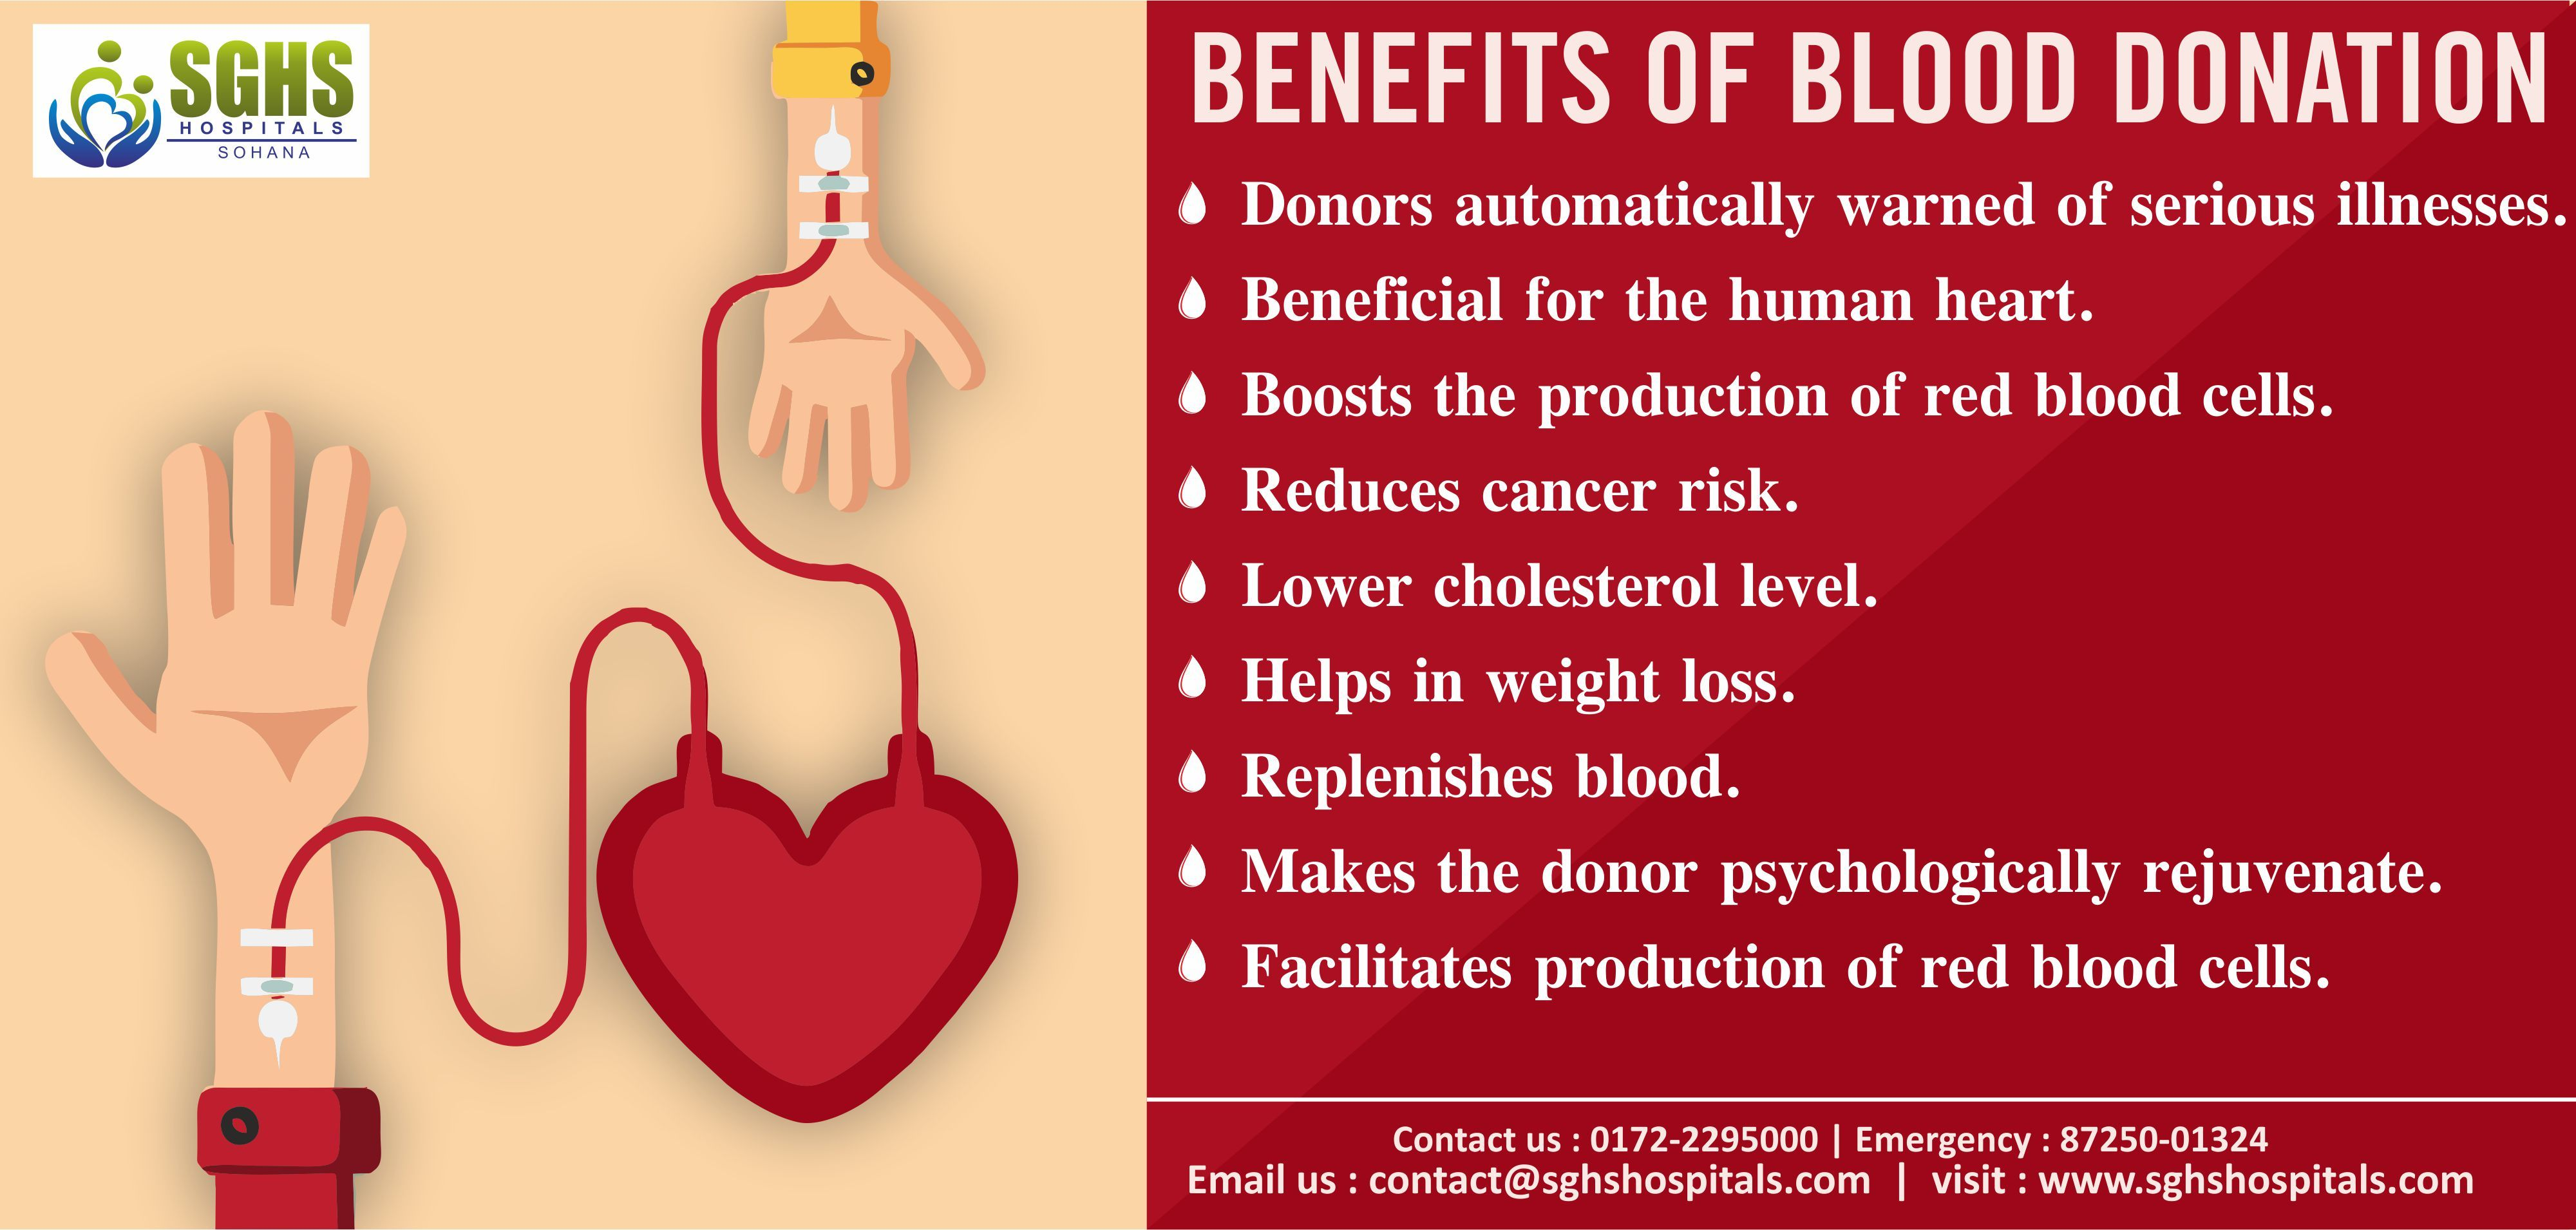 the benefits of donating blood The miller-keystone blood center says that consistent blood donation associated with lower risks of cancers including liver, lung, colon, and throat cancers due to the reduction in oxidative stress when iron is released from the bloodstream.